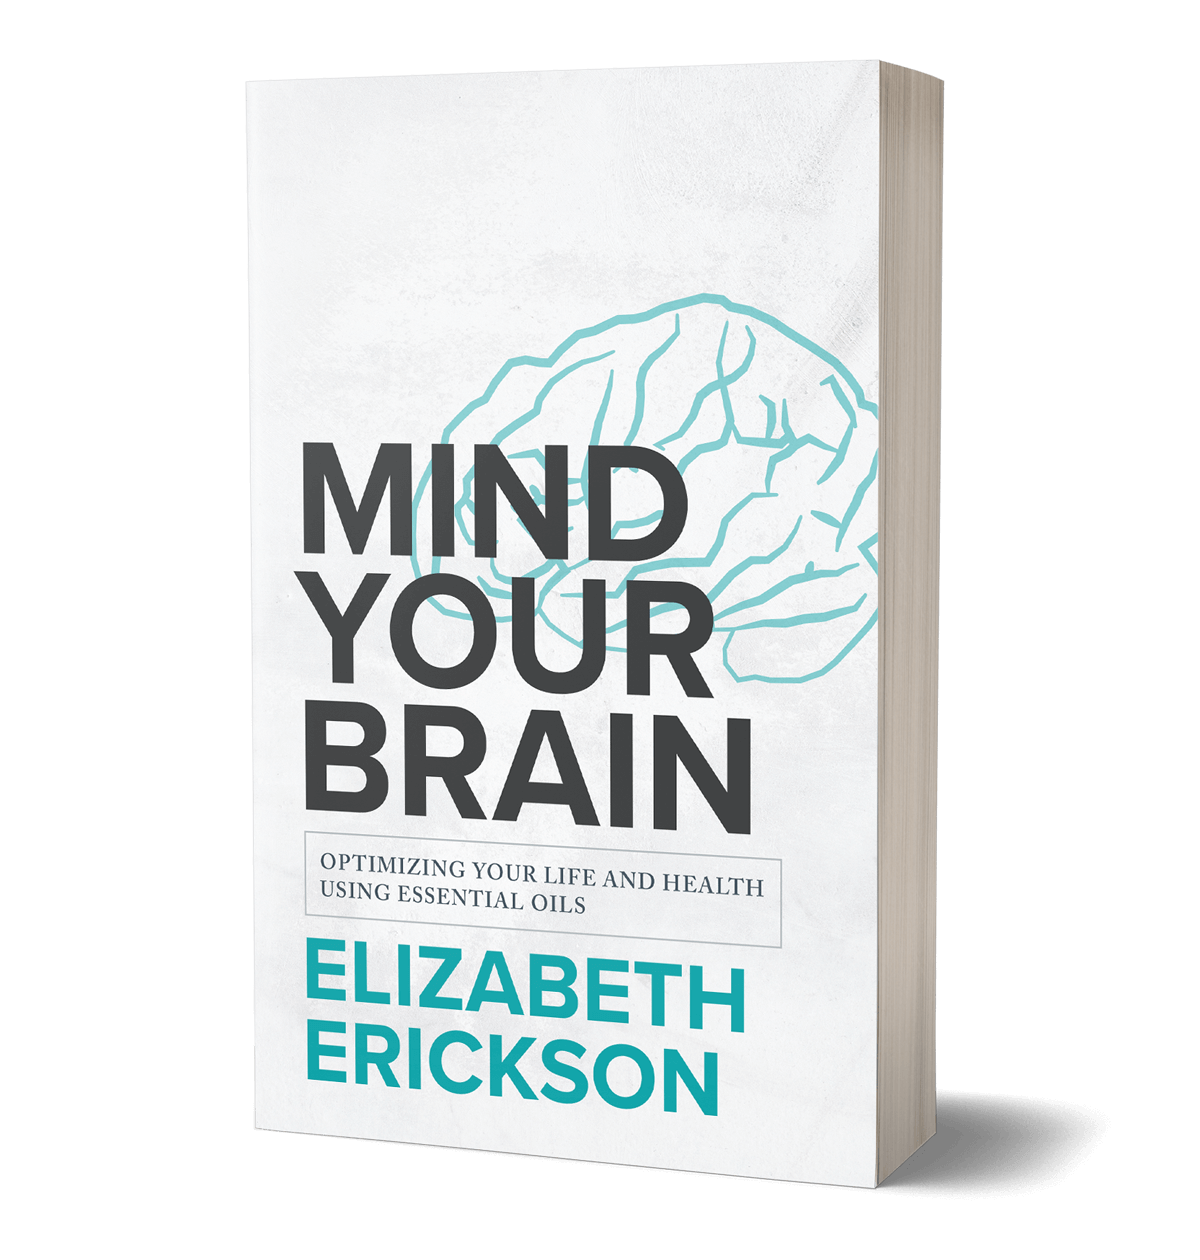 The book Mind Your Brain by Elizabeth Erickson